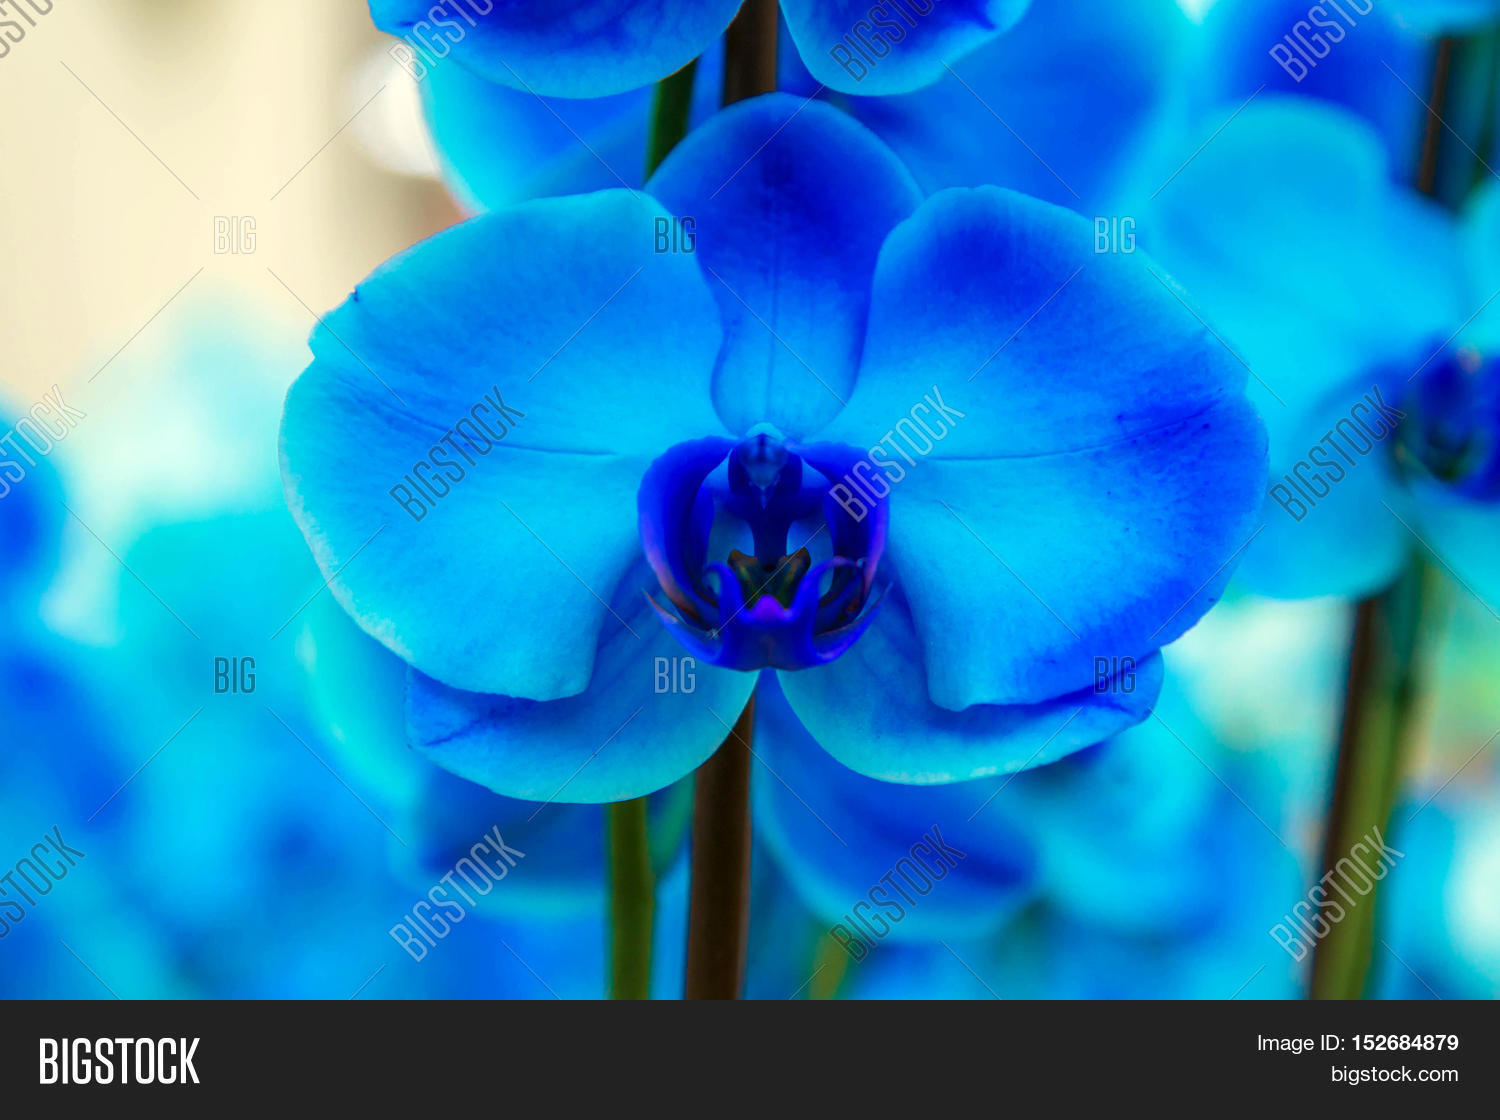 Orchid Flowers Orchid Image Photo Free Trial Bigstock